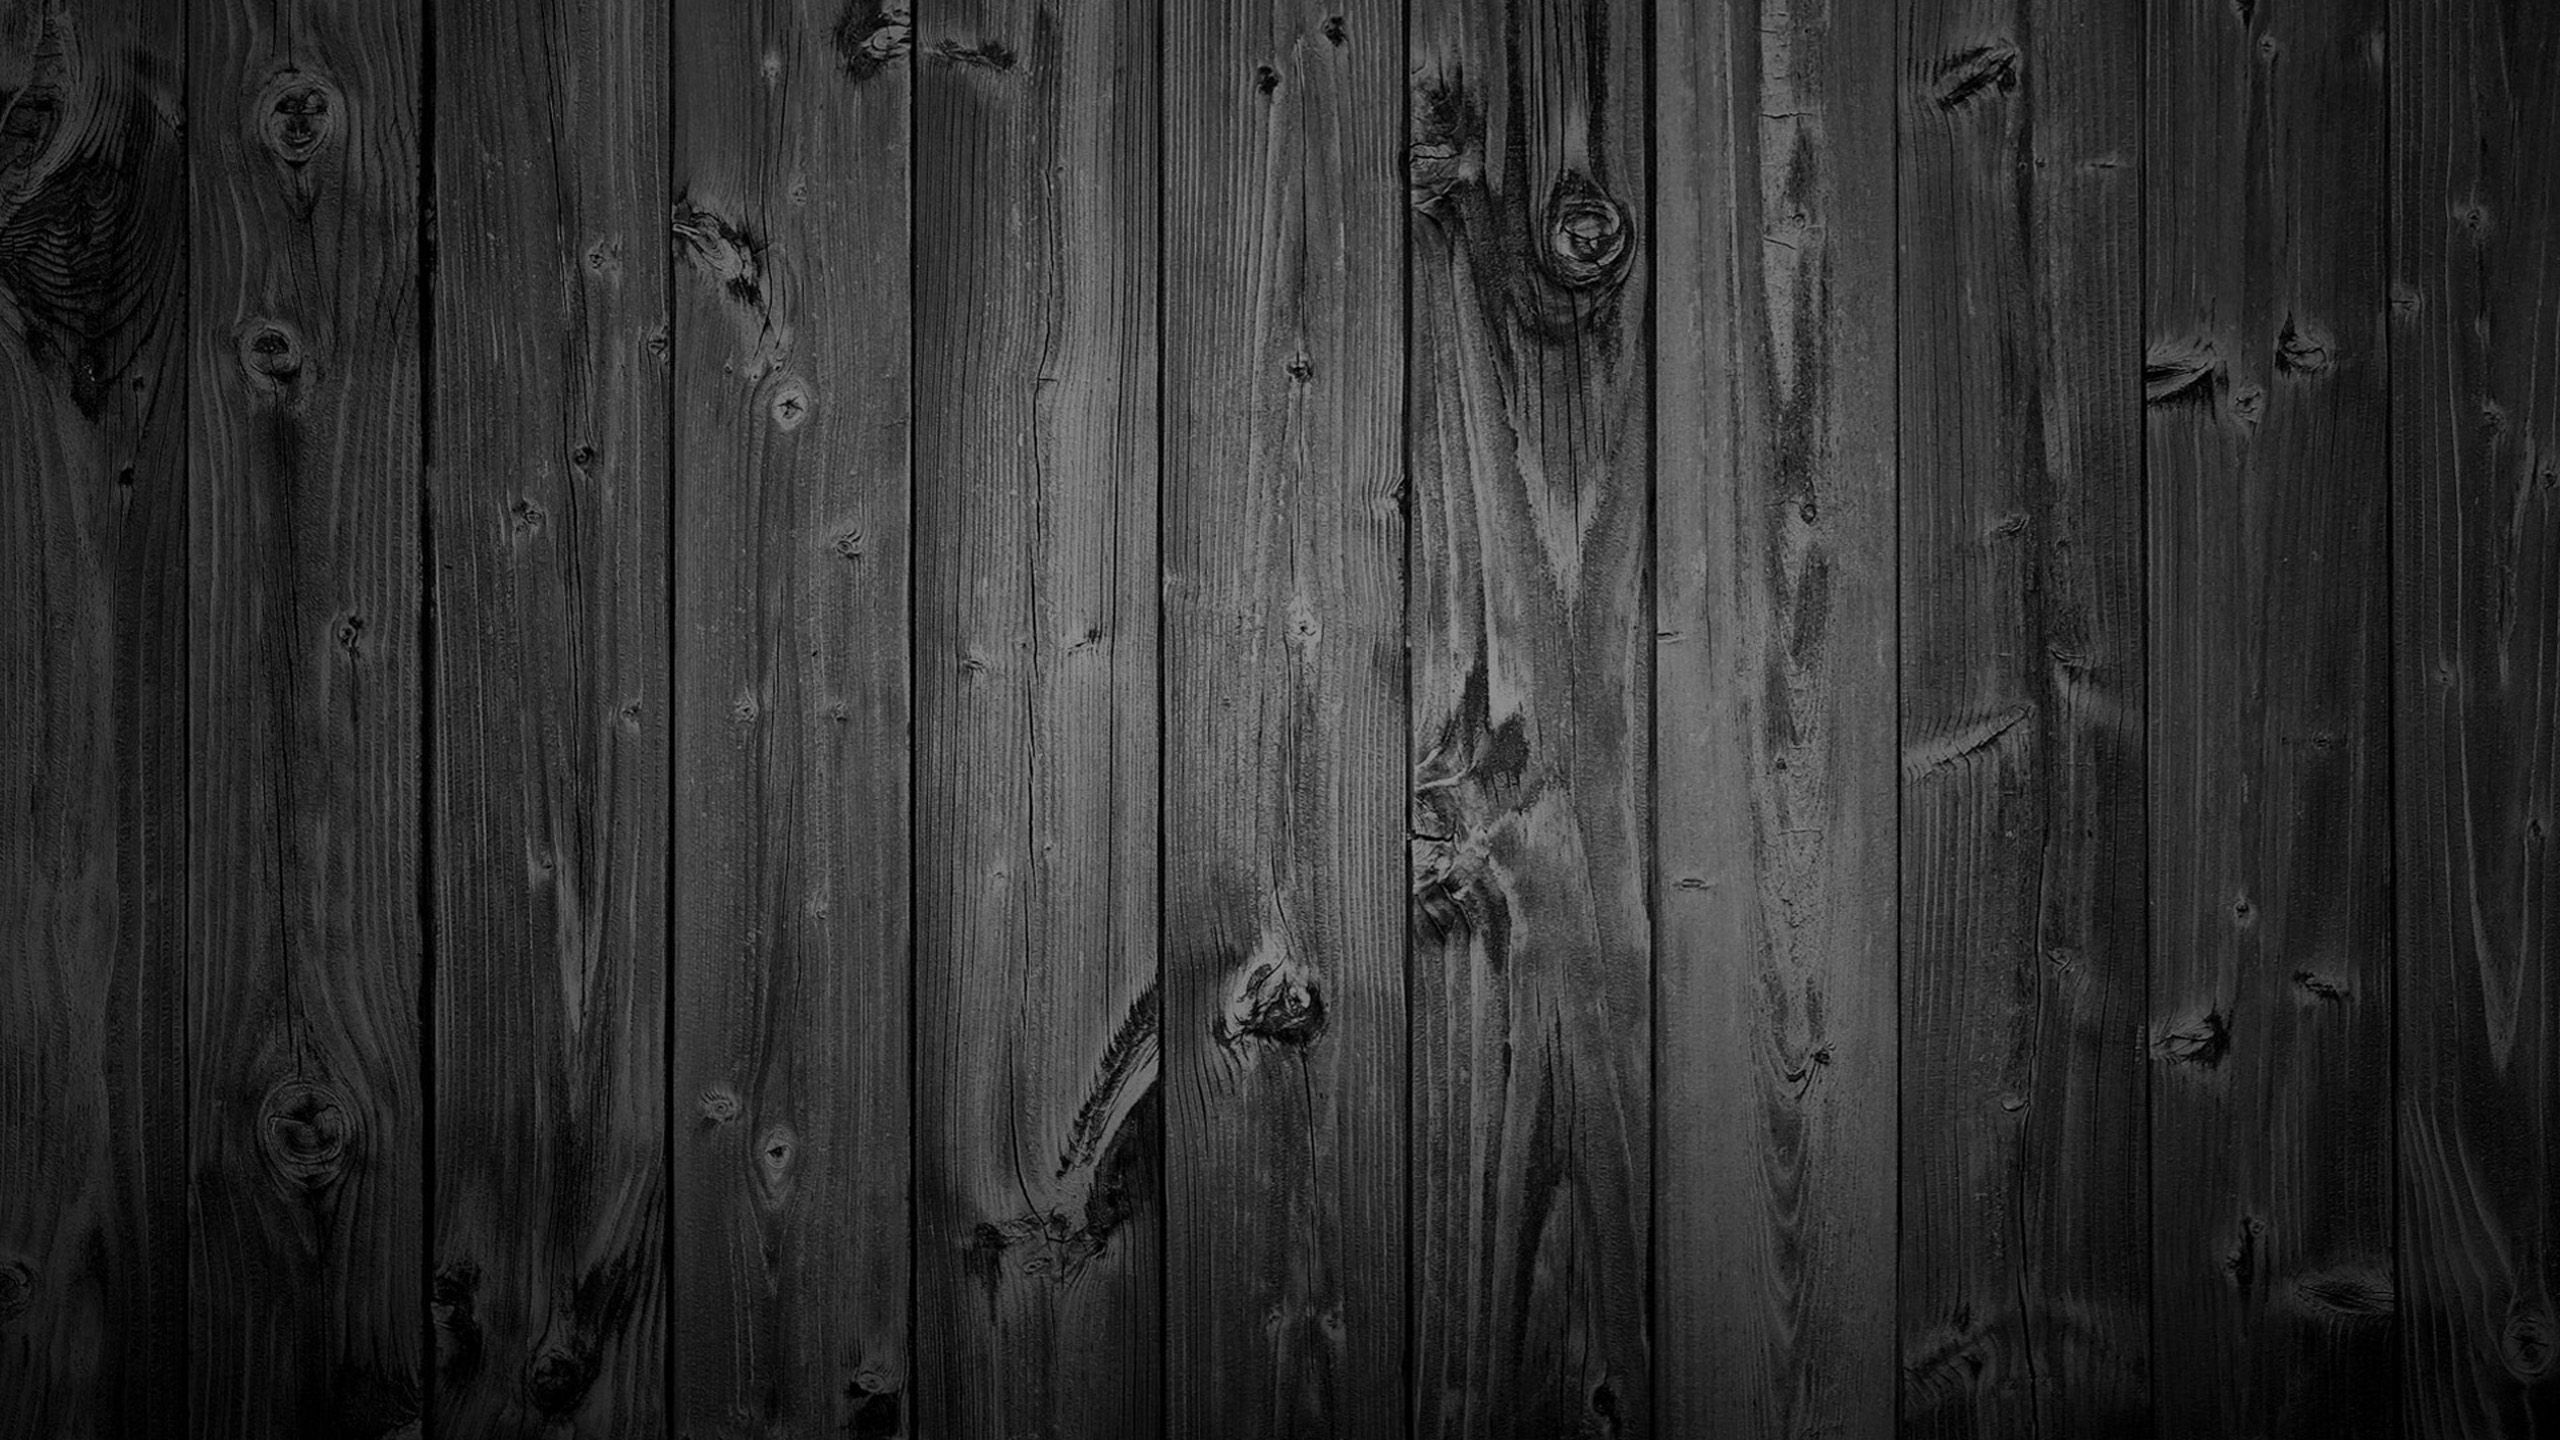 Wood Planks HD desktop wallpaper   High Definition  Updated. Wood Plank Wallpaper   My blog